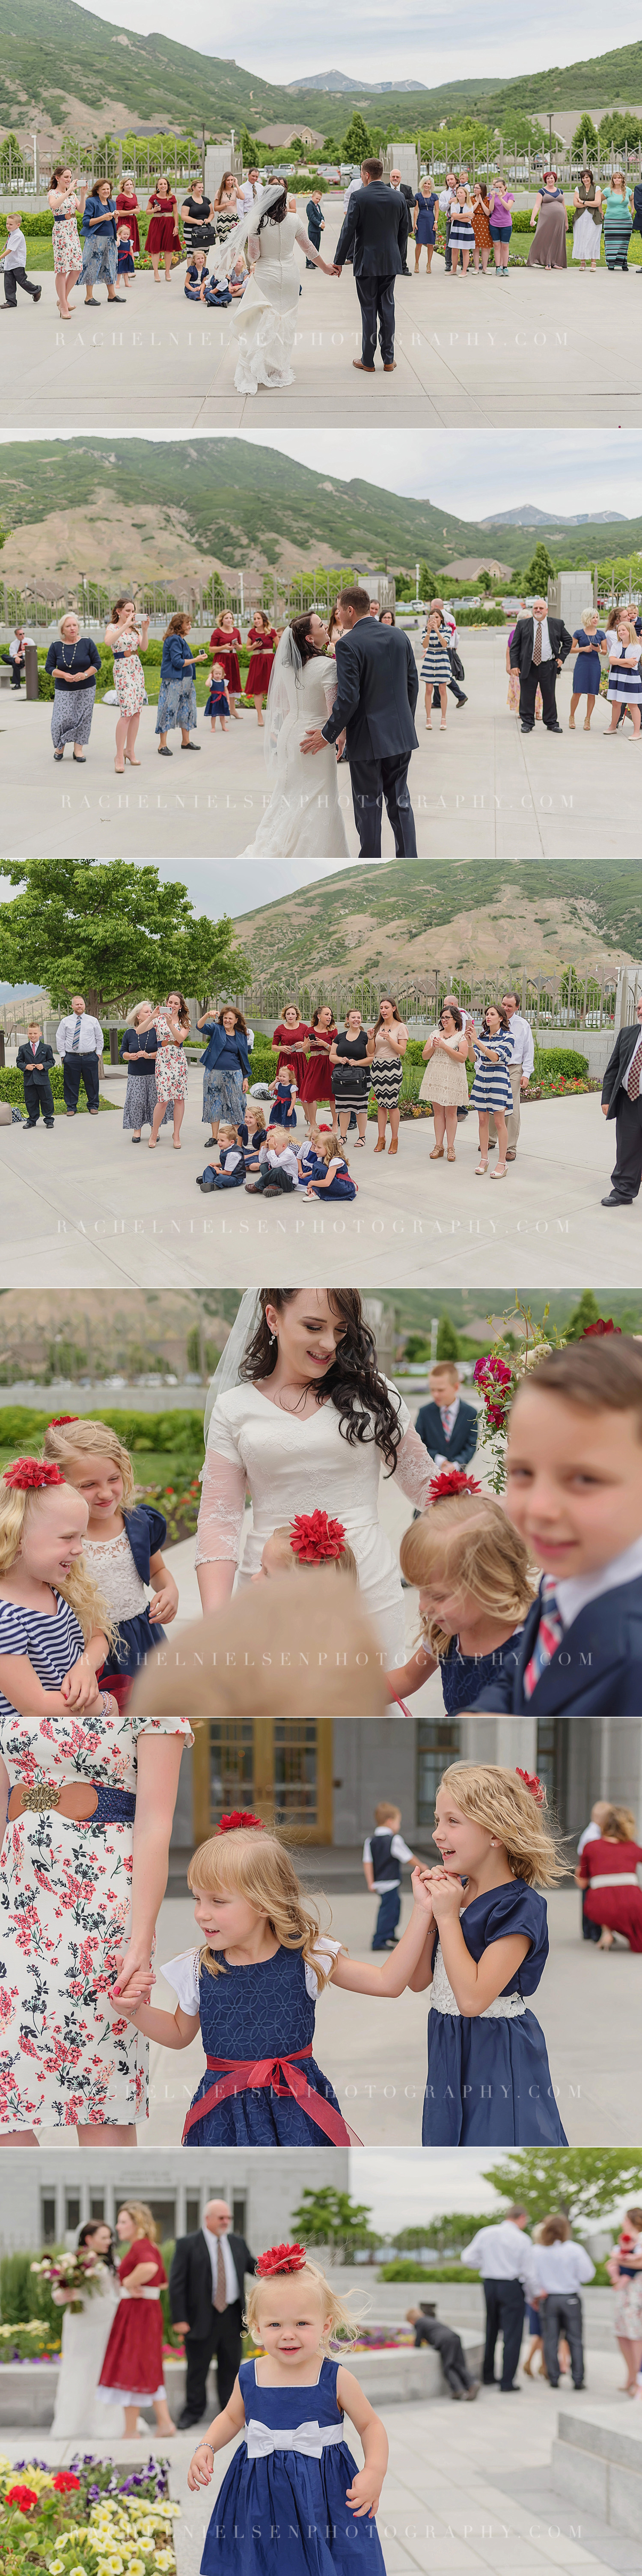 Draper-LDS-temple-wedding-4